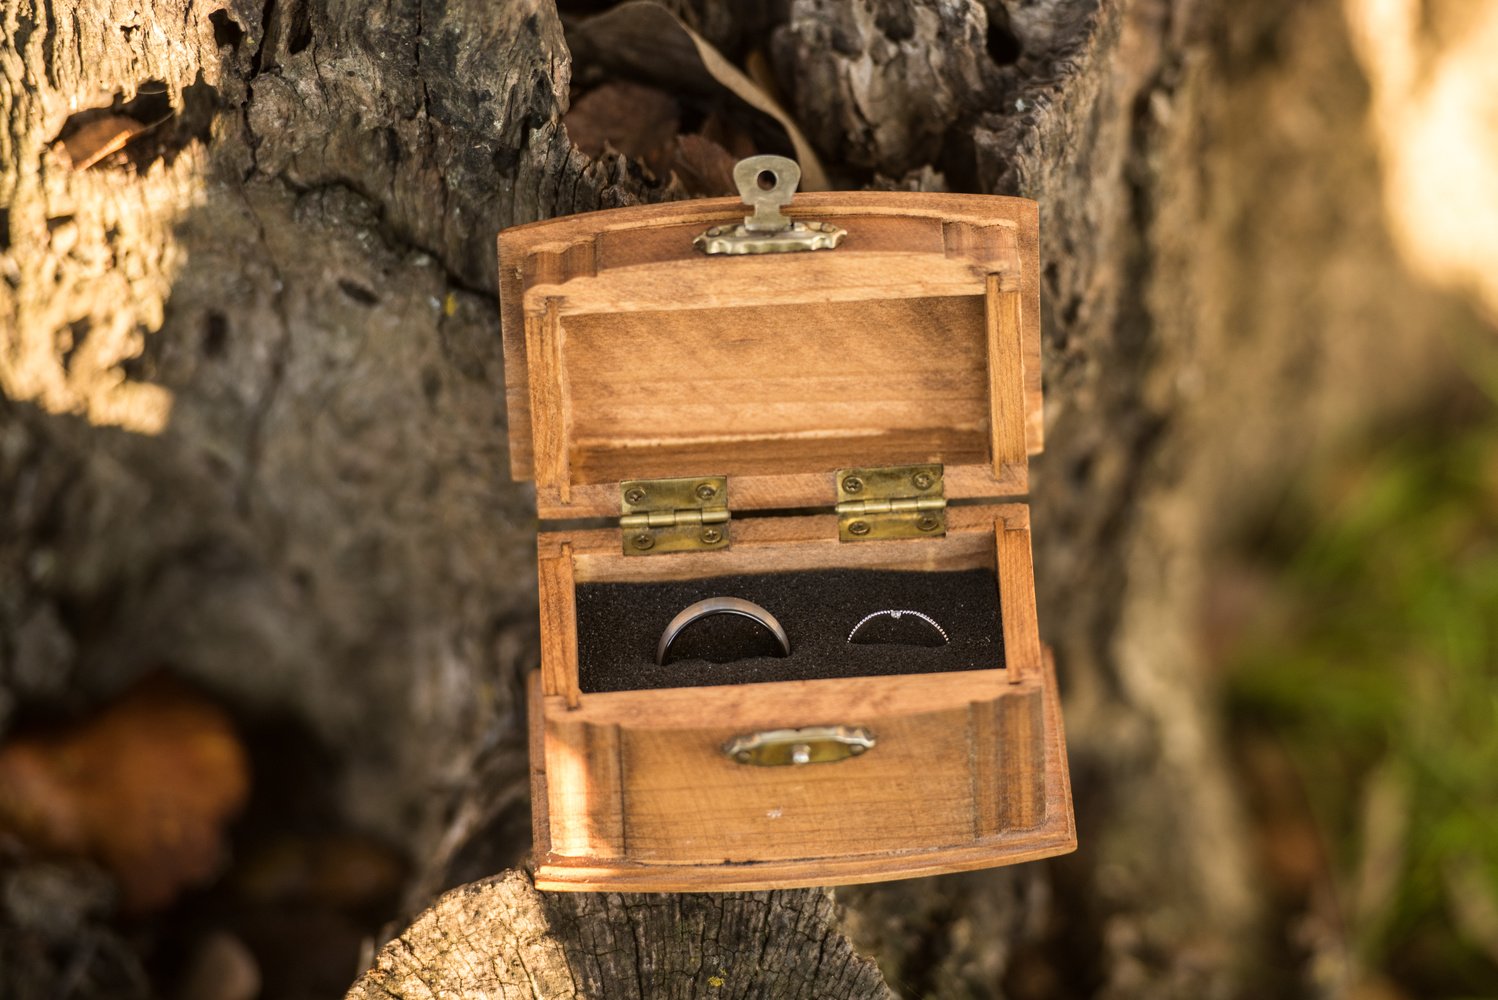 A photo of wedding rings sitting in a box on a tree stump